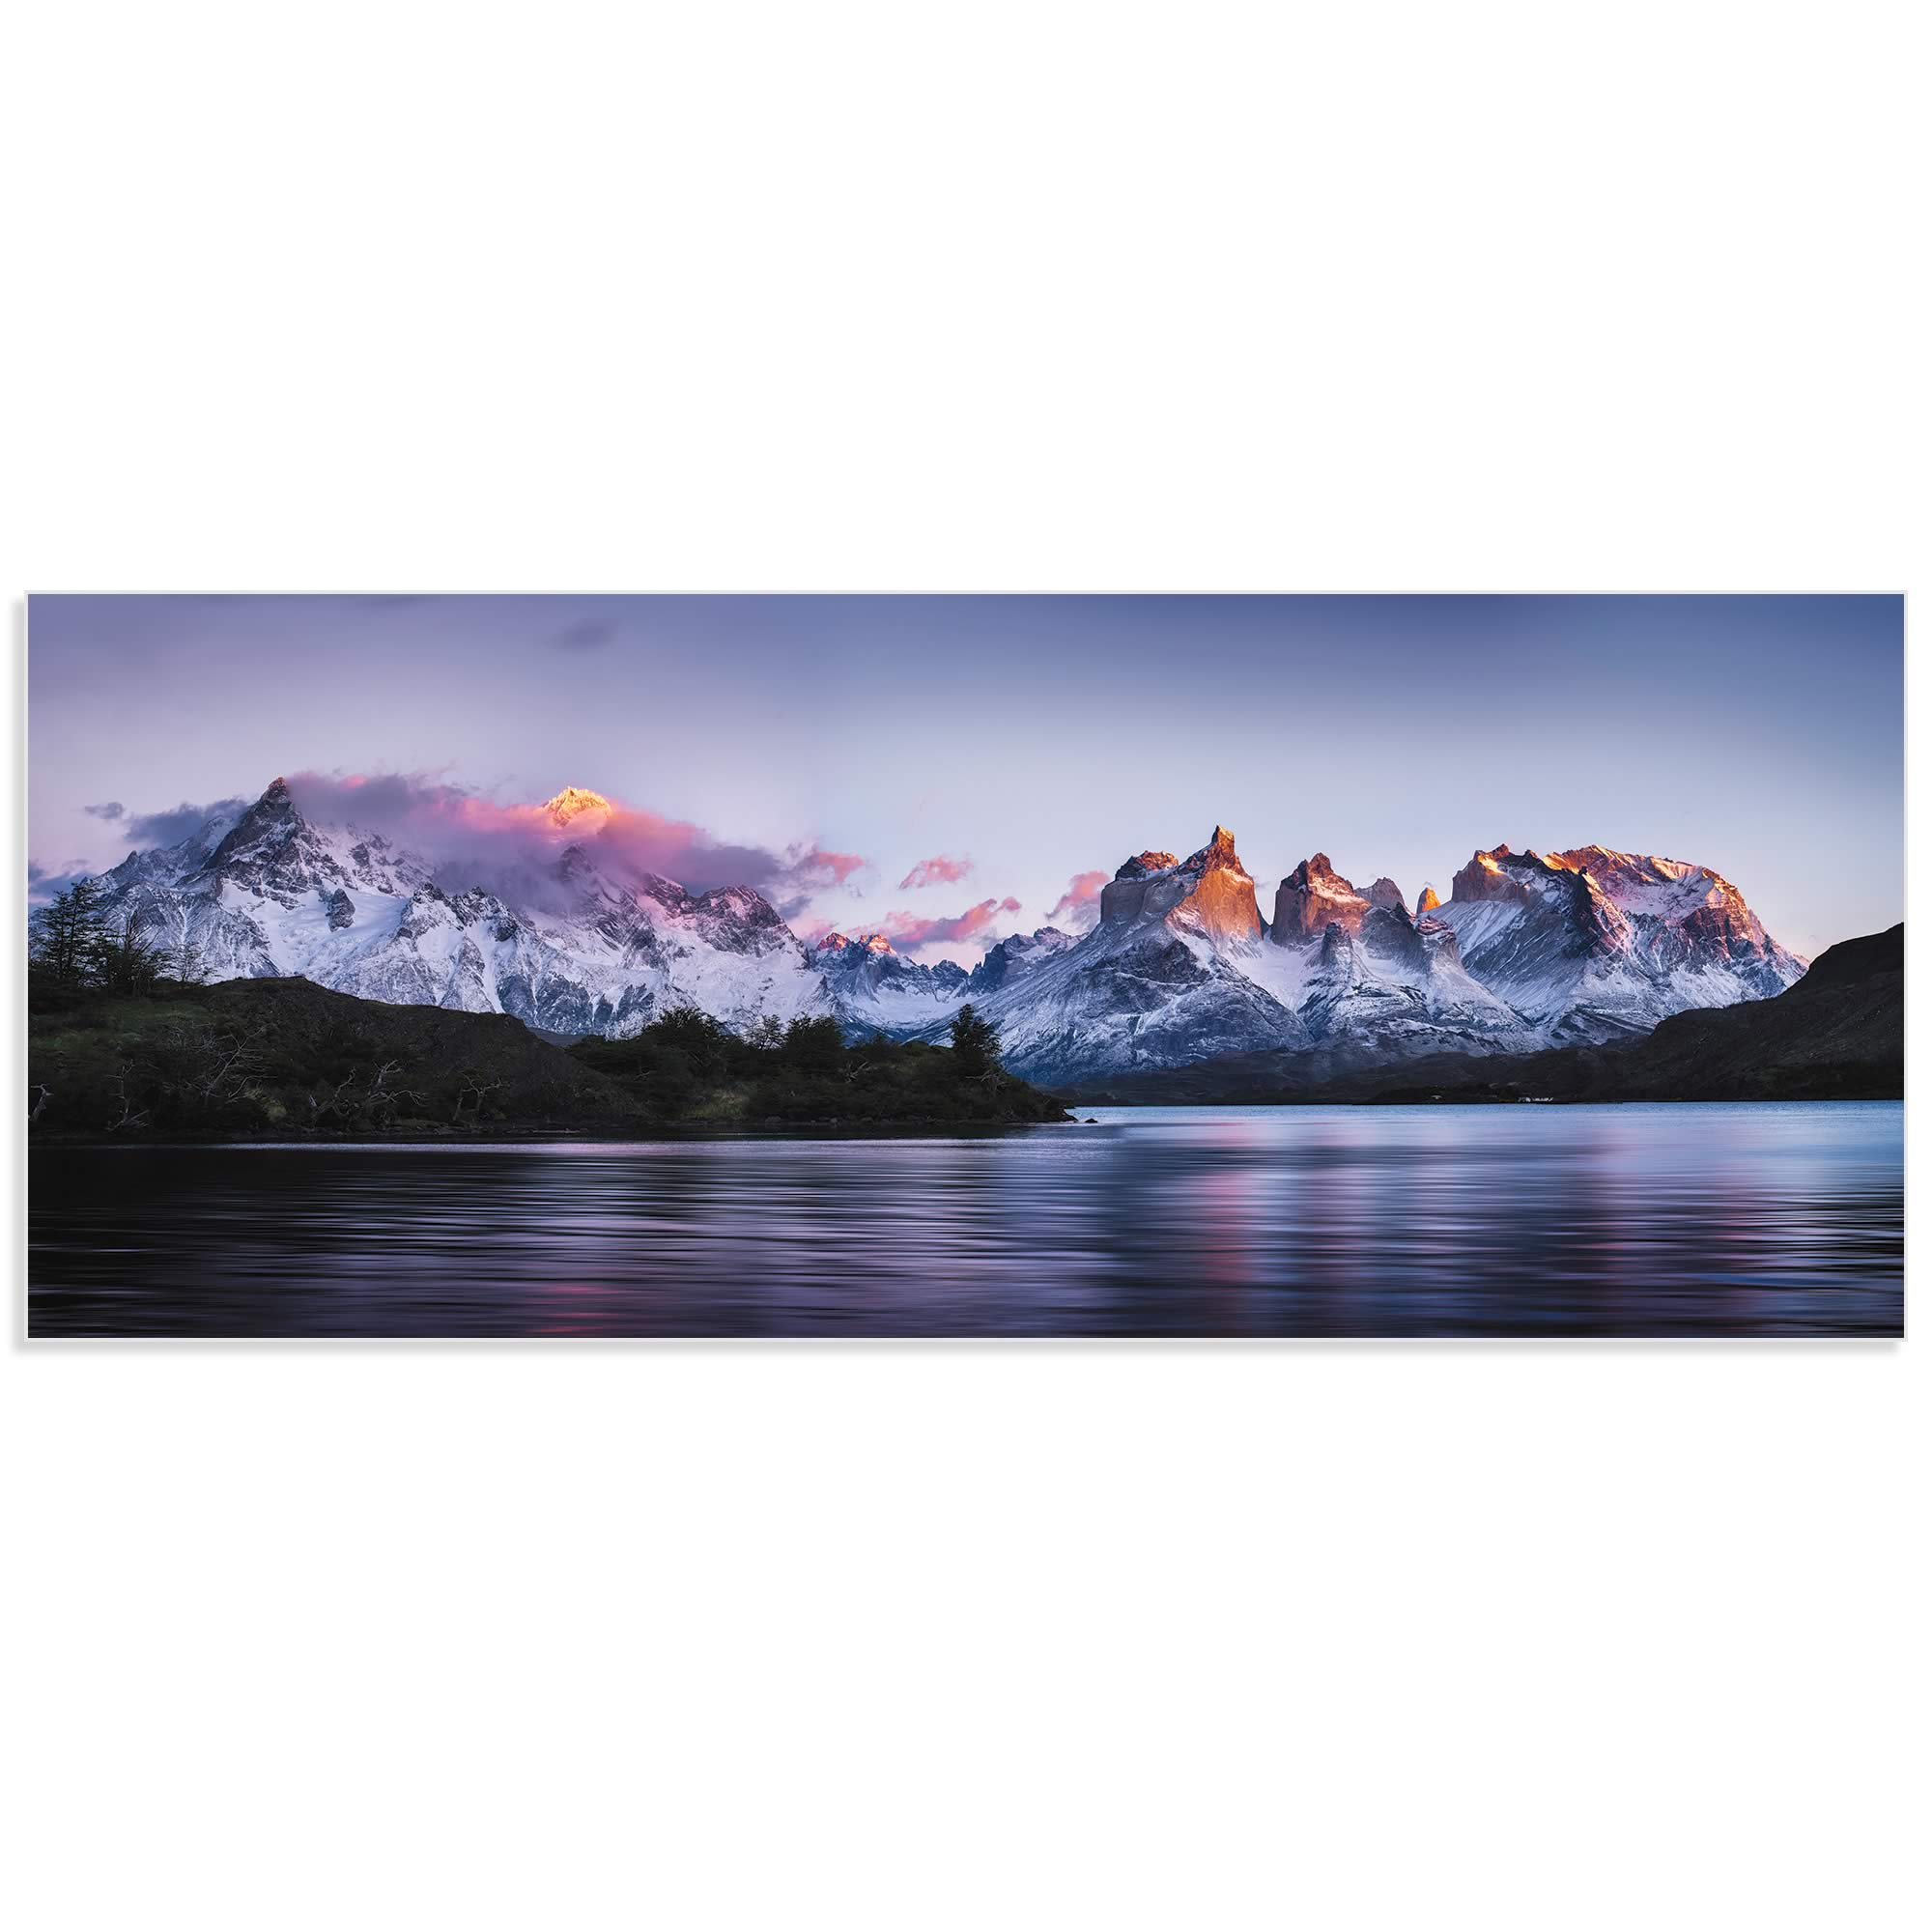 Torres del Paine by Ignacio Palacios - Landscape Art on Metal or Acrylic - Alternate View 2